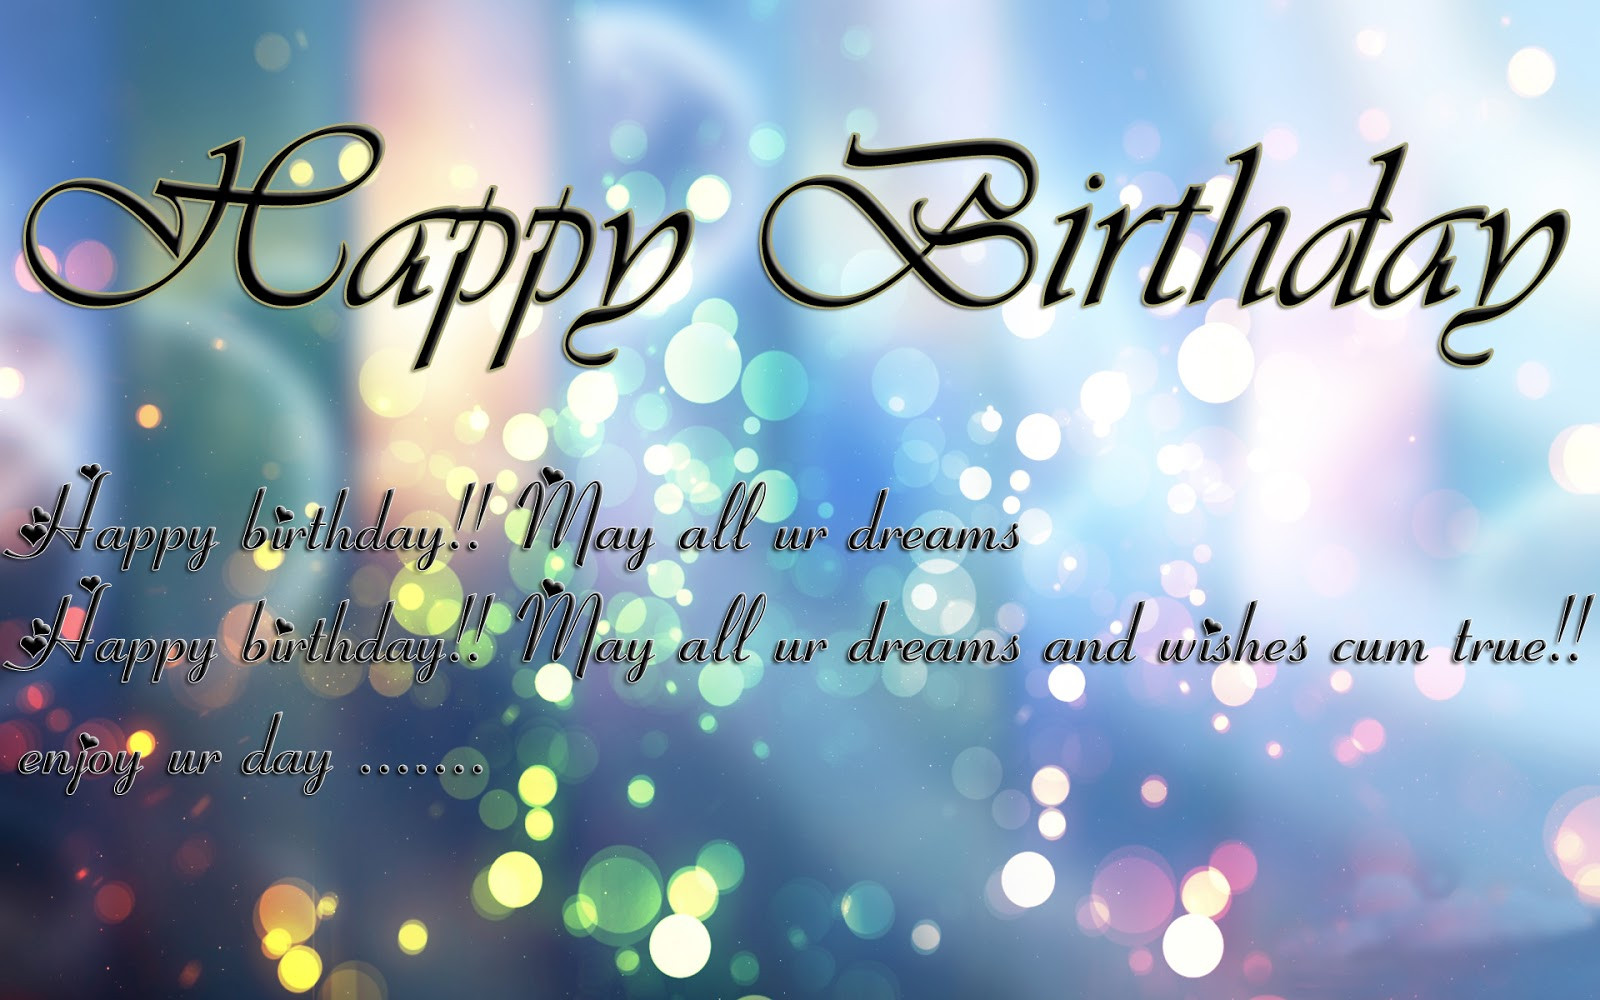 Best ideas about Birthday Wishes Words . Save or Pin Happy Birthday Wishes Poem for Brother Now.